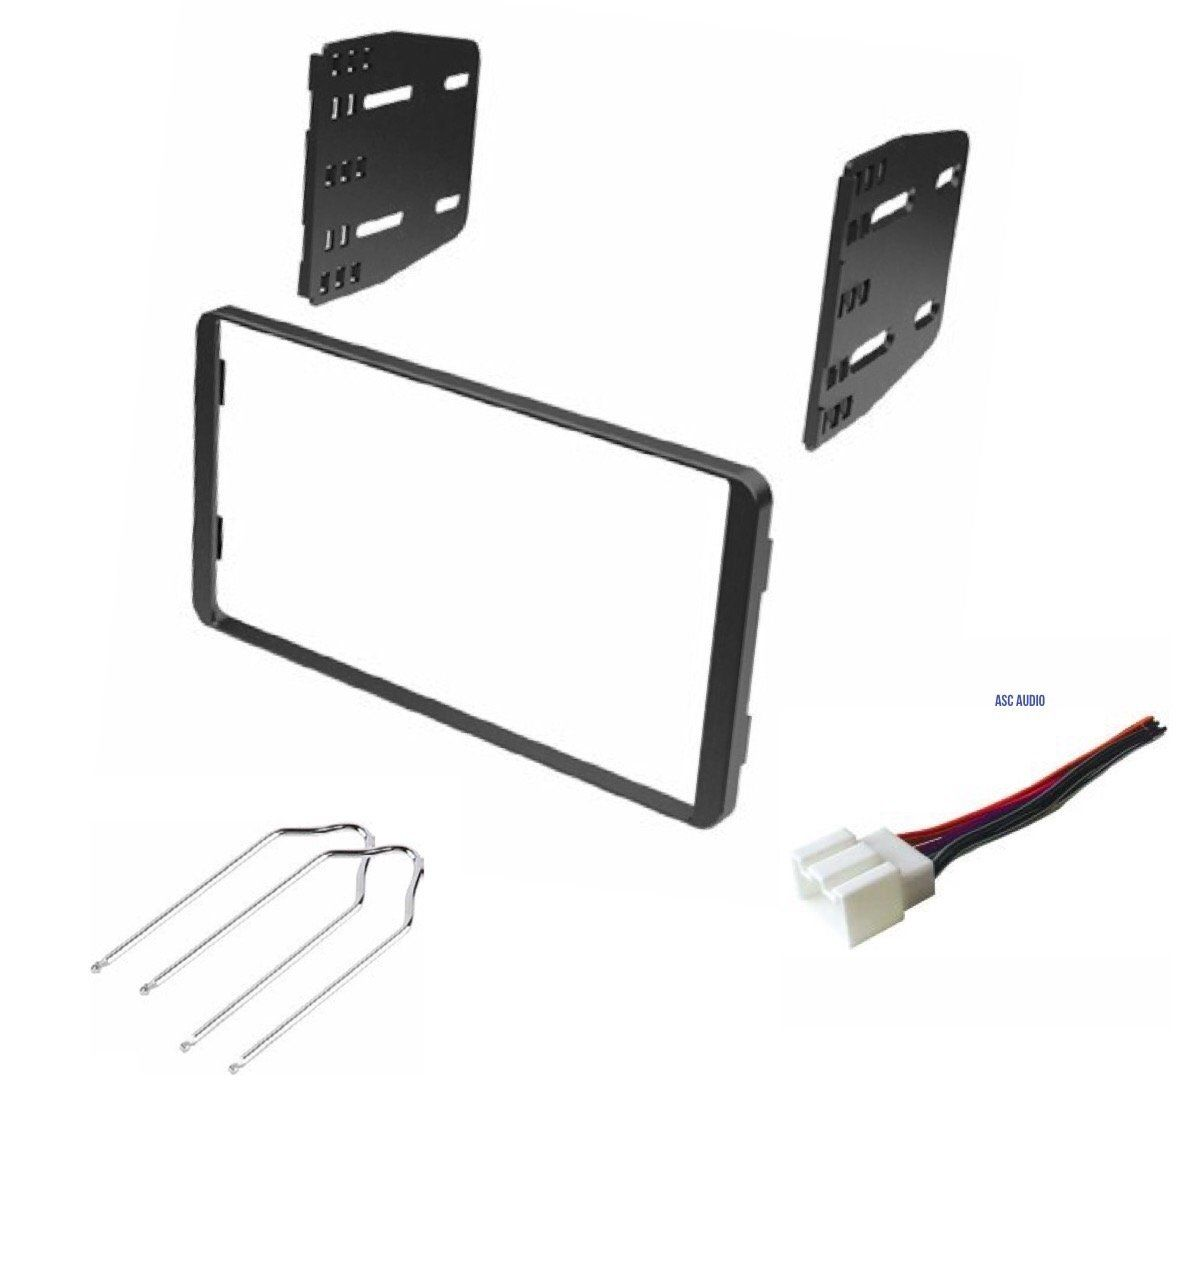 small resolution of car stereo dash kit wire harness and radio tool for installing a double din radio for 1998 2008 ford econoline 1999 2003 ford f 150 1999 2004 ford